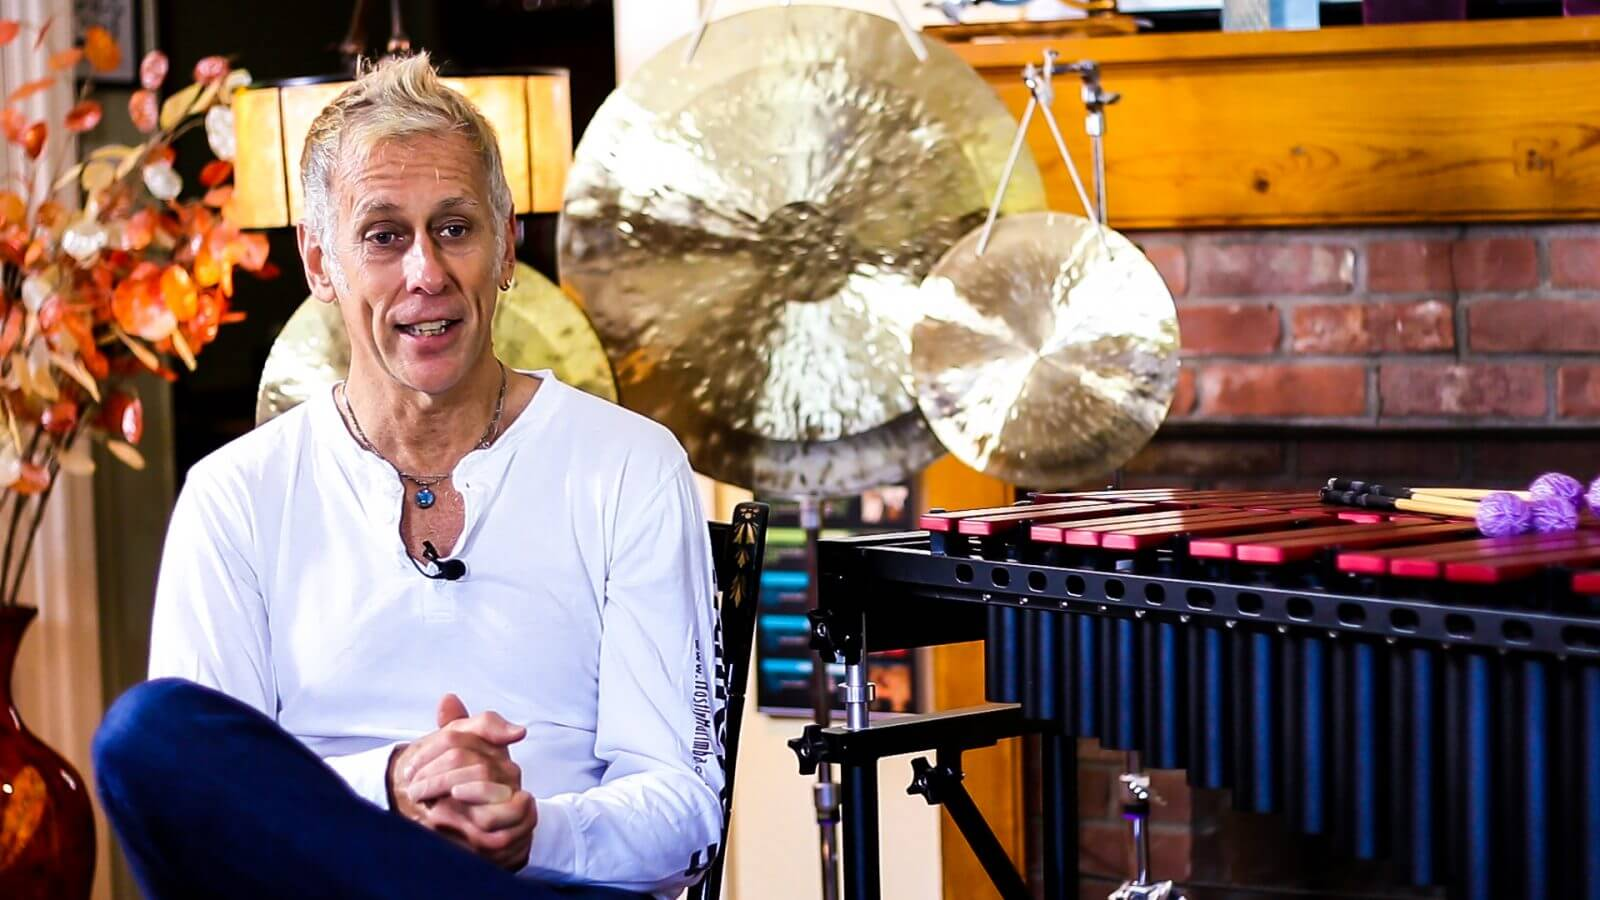 Joe Locke talking about the Malletech Omega